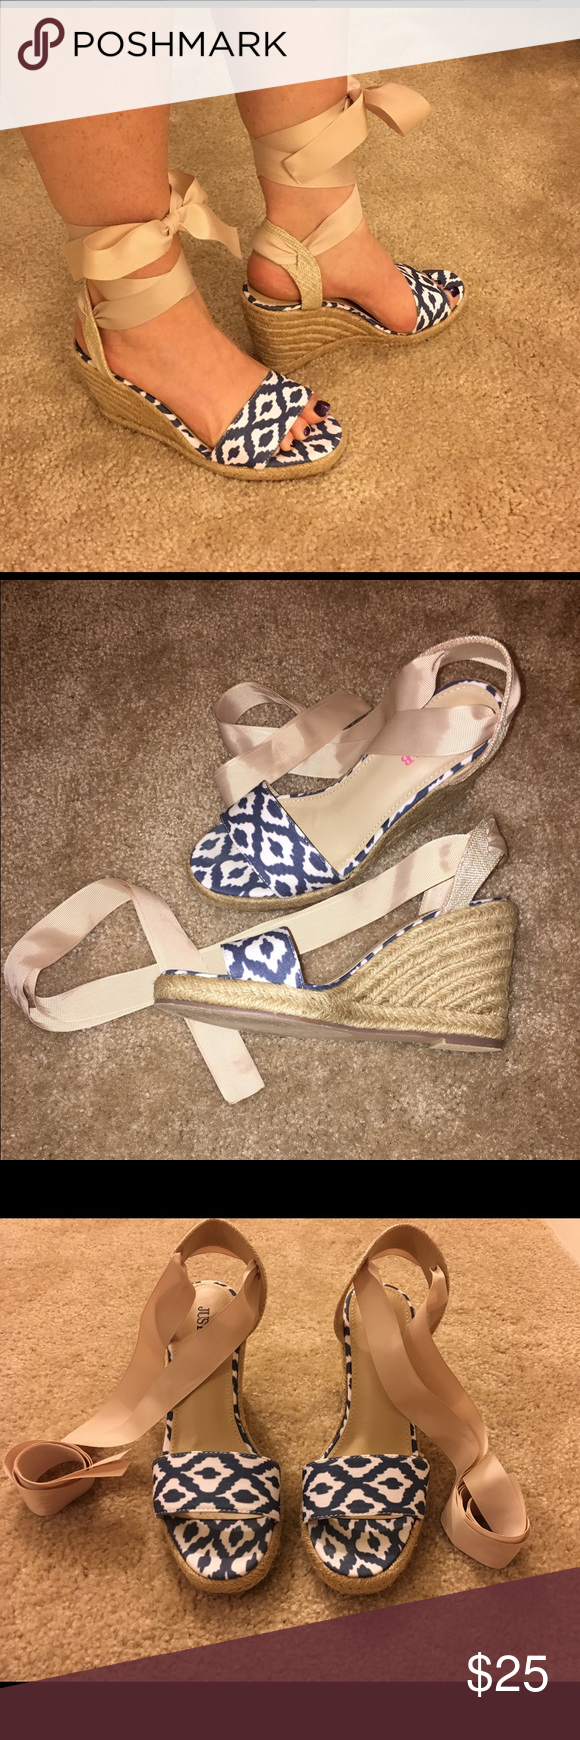 Lace up Espadrilles Super cute tie up espadrilles. Never worn. Size 6. Blue, white, and cream. Reasonable offers accepted 💗 Shoes